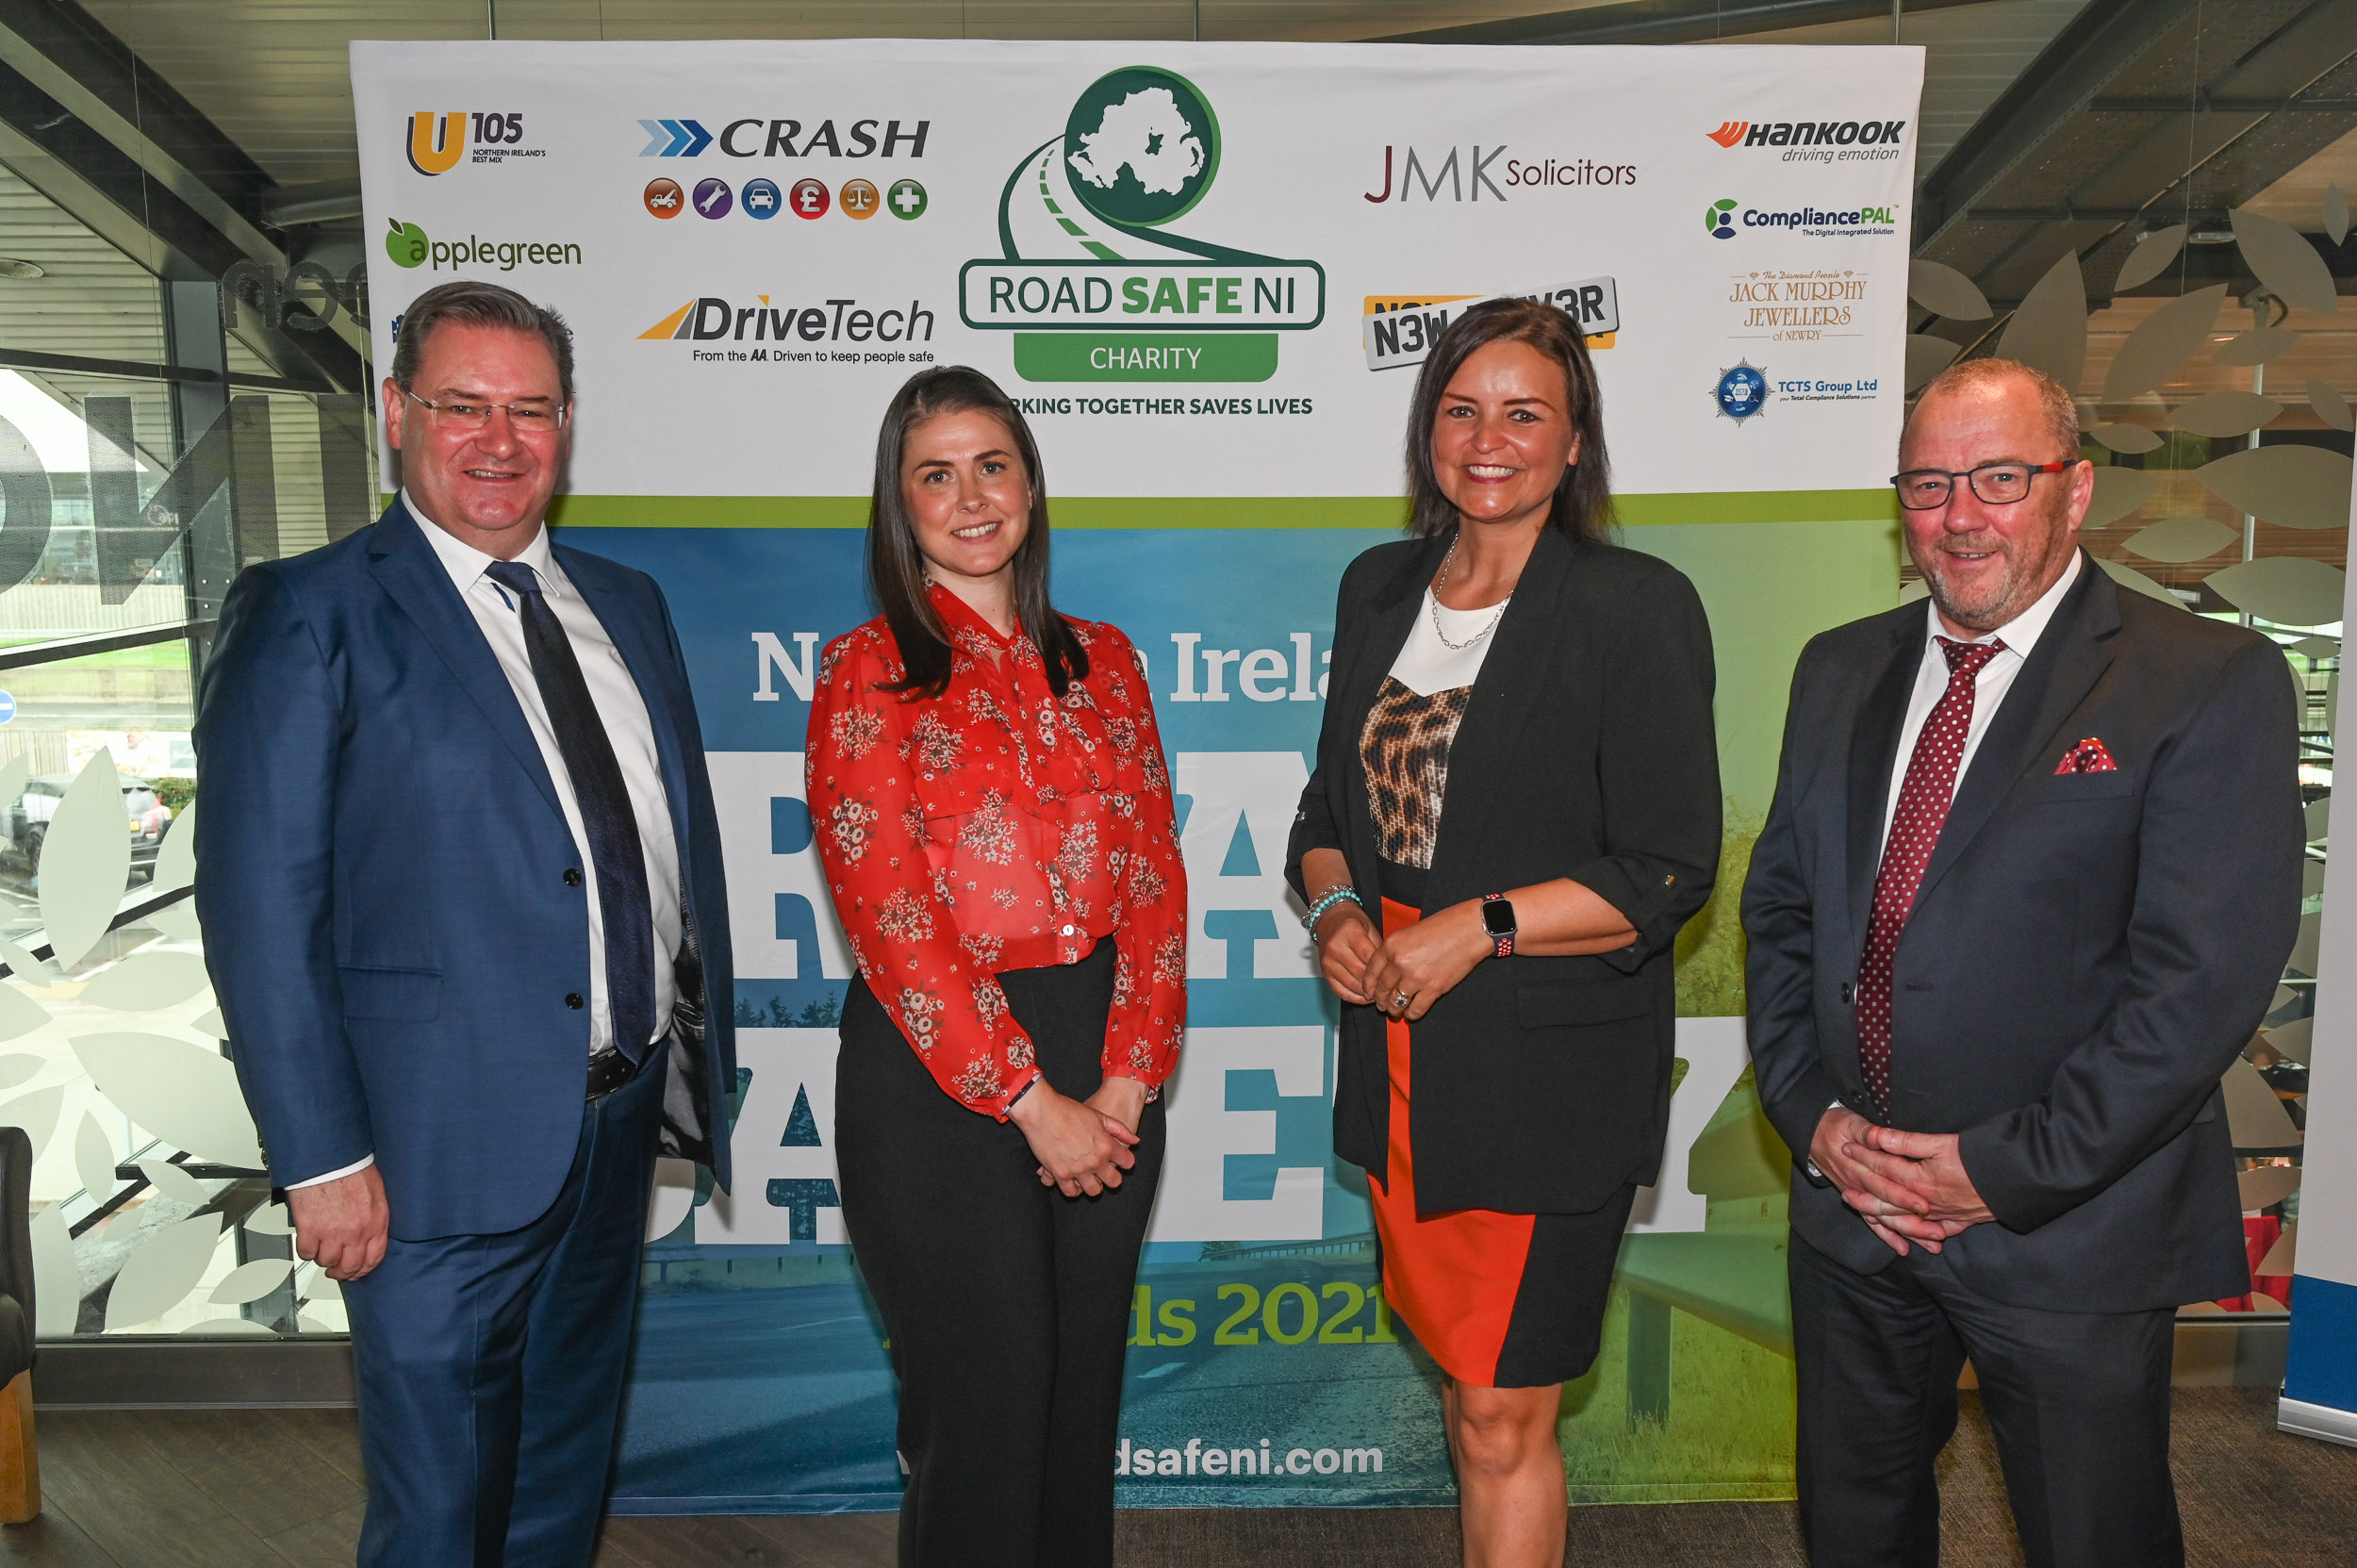 NI Road Safety Awards 2021 Launched